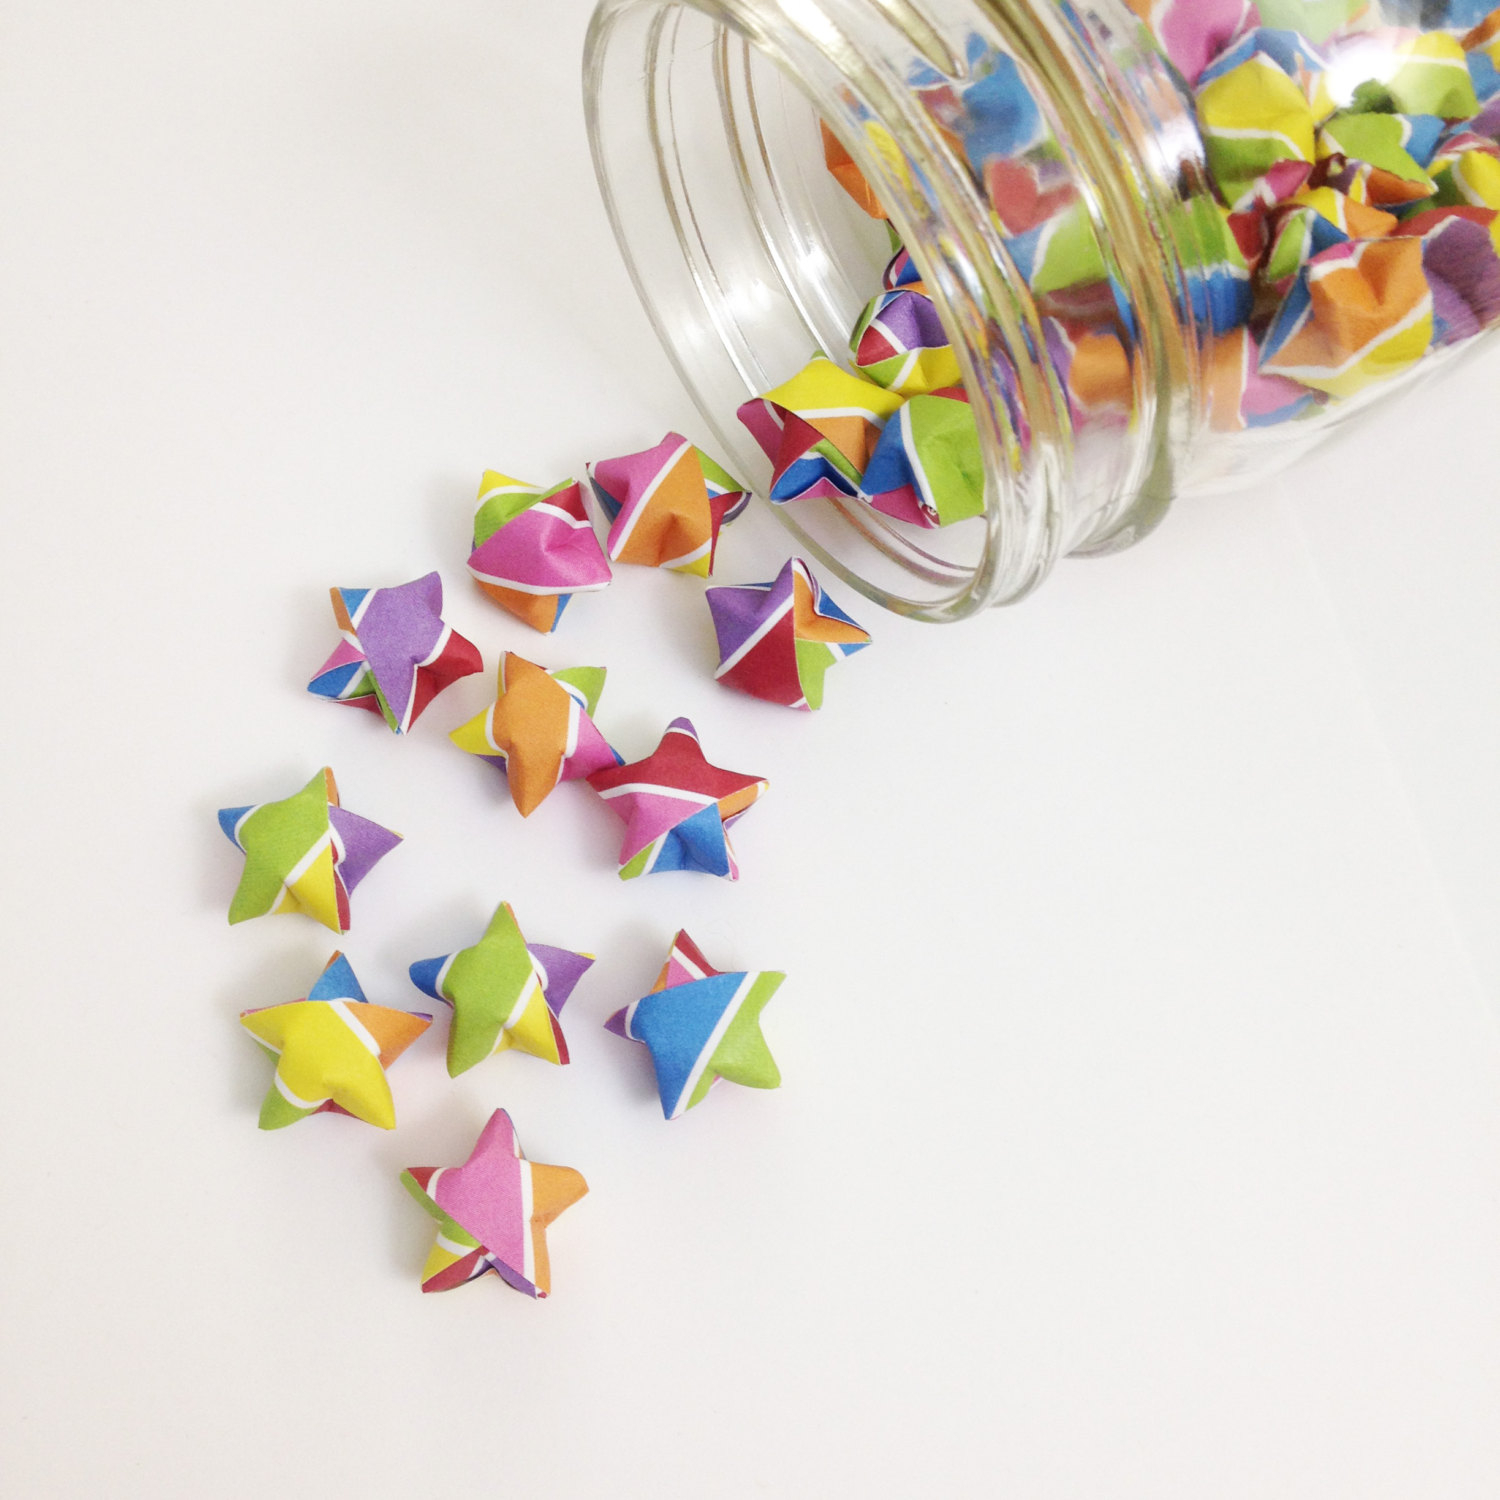 Origami Star Decorations 48 Rainbow Origami Stars Stripes Mini Star Decorations Folded Paper Lucky Stars Gay Pride Red Orange Yellow Pink Blue Purple